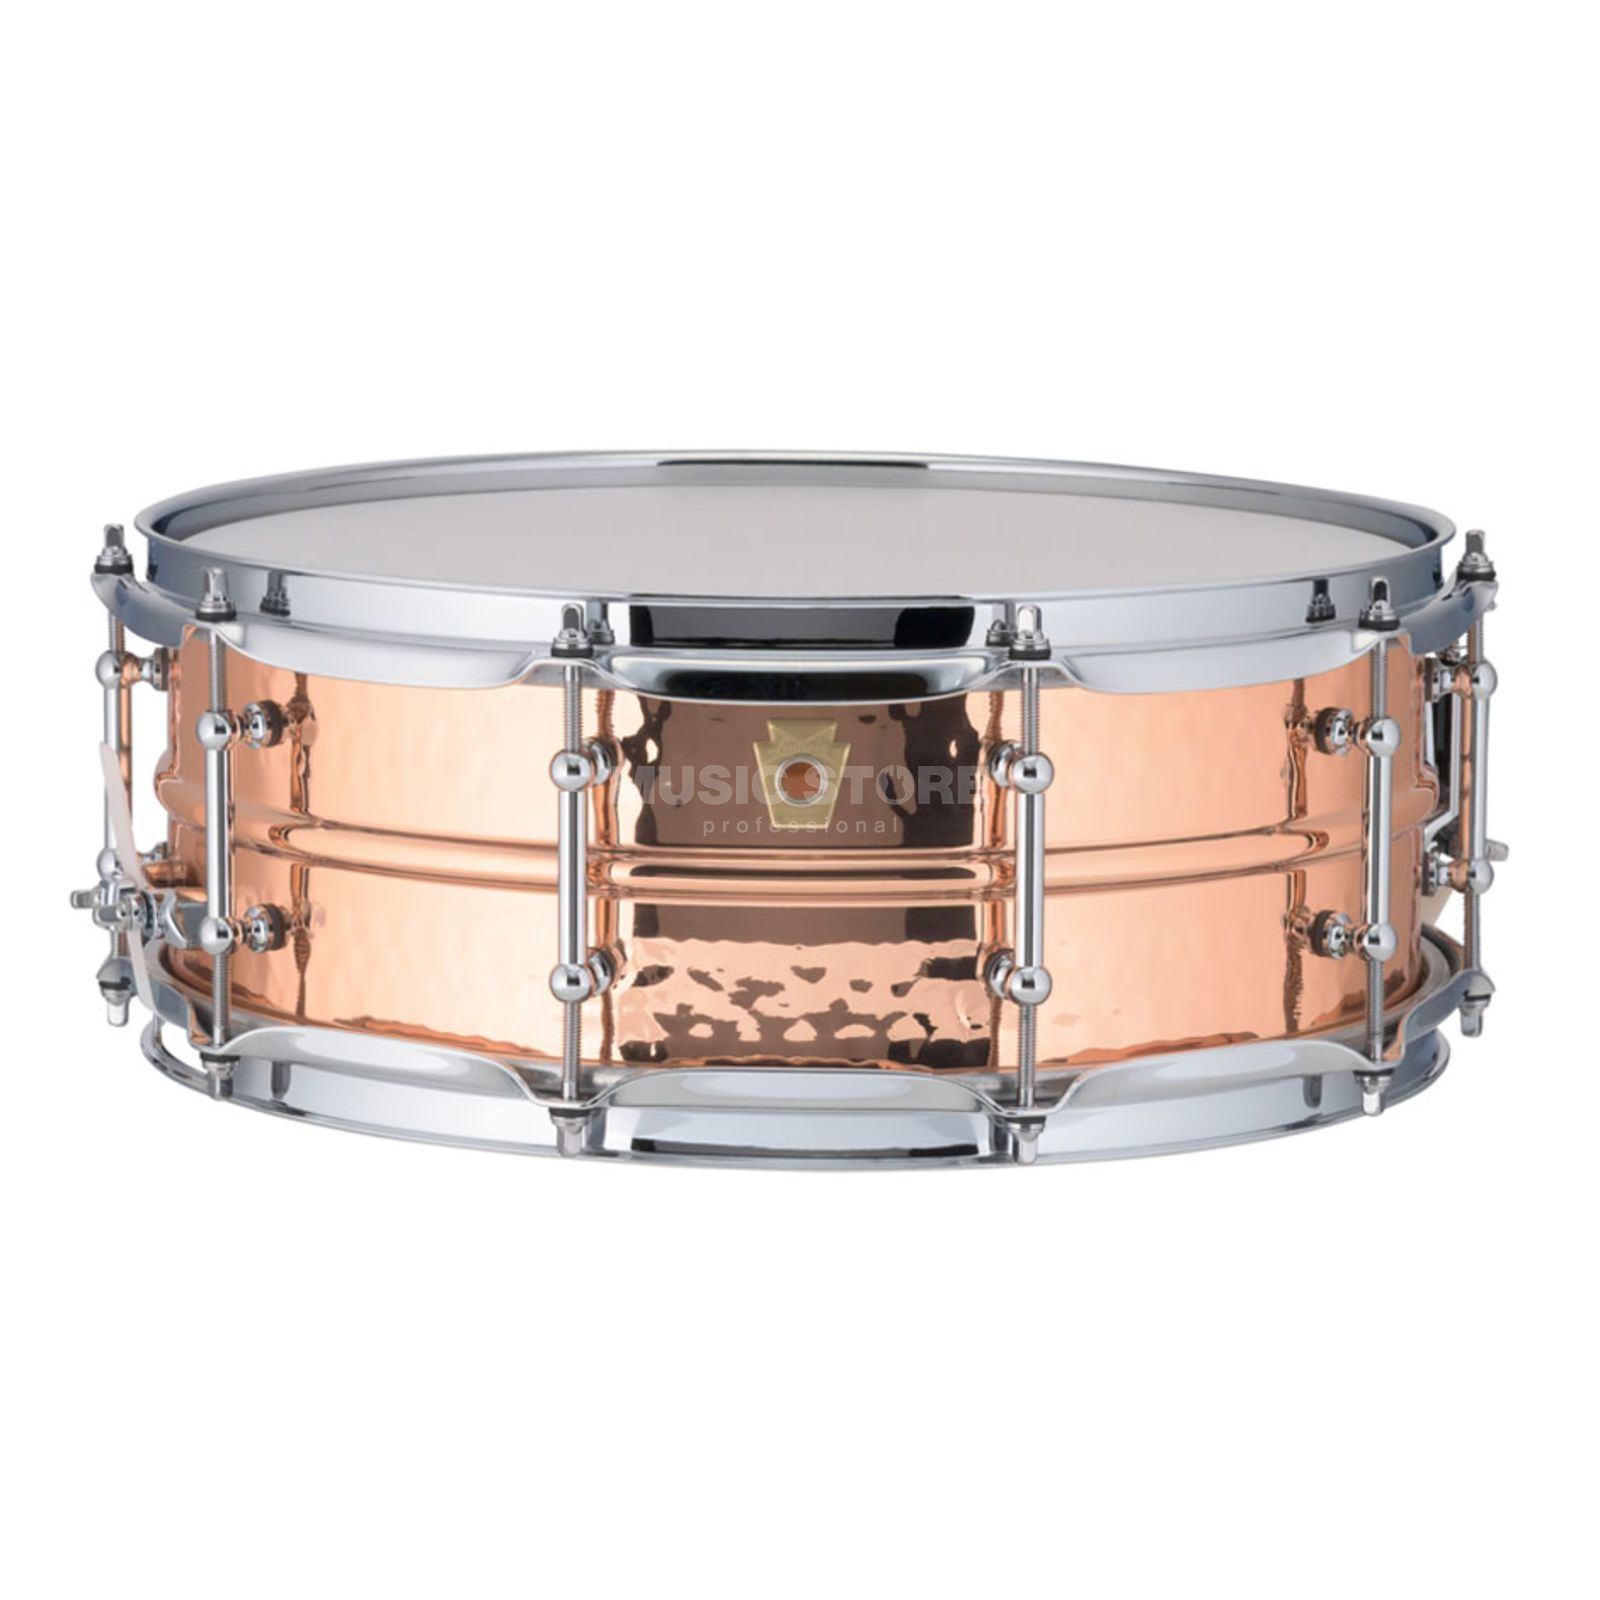 "Ludwig Copper Phonic Snare LC660KT, 14""x5"", Hammered Copper Produktbild"